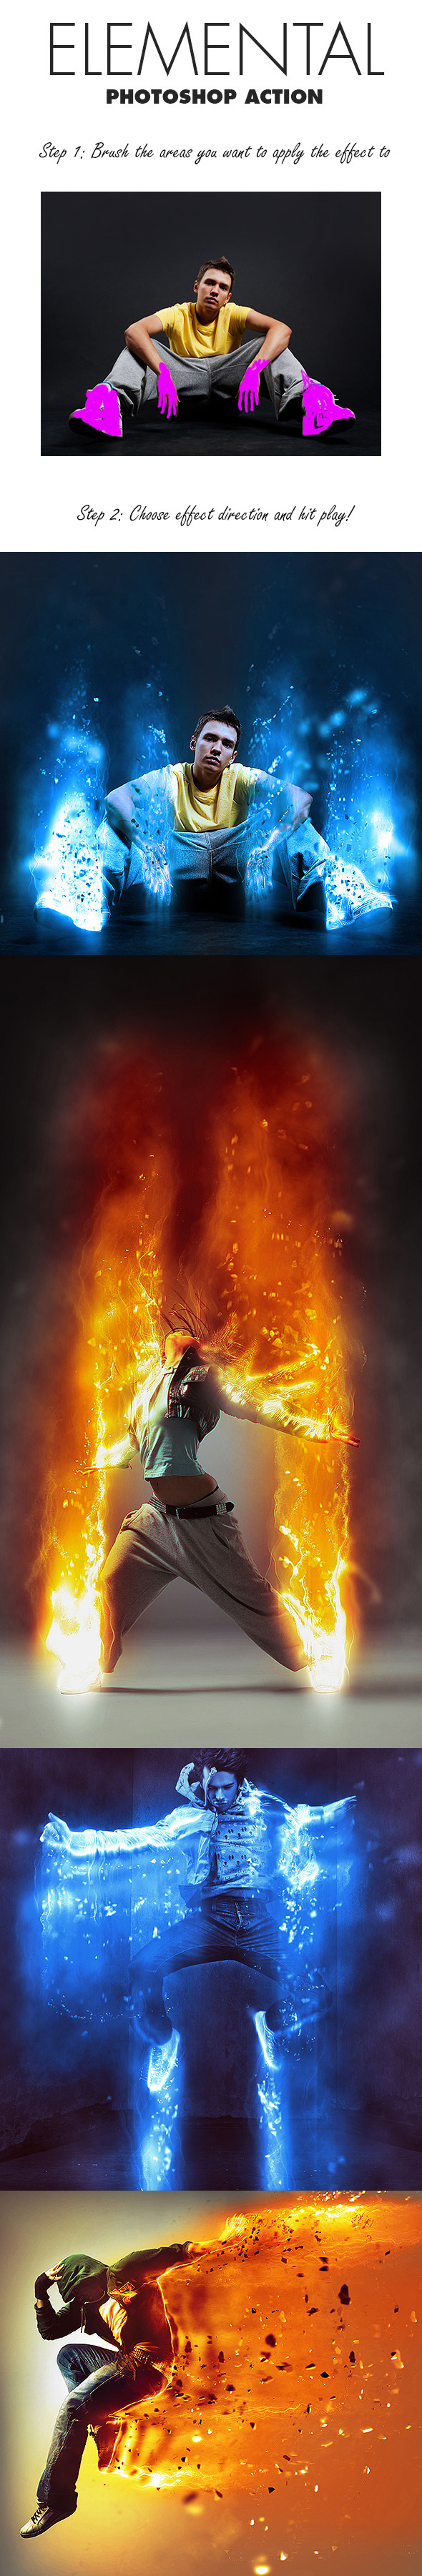 11-Elemental Photoshop Action